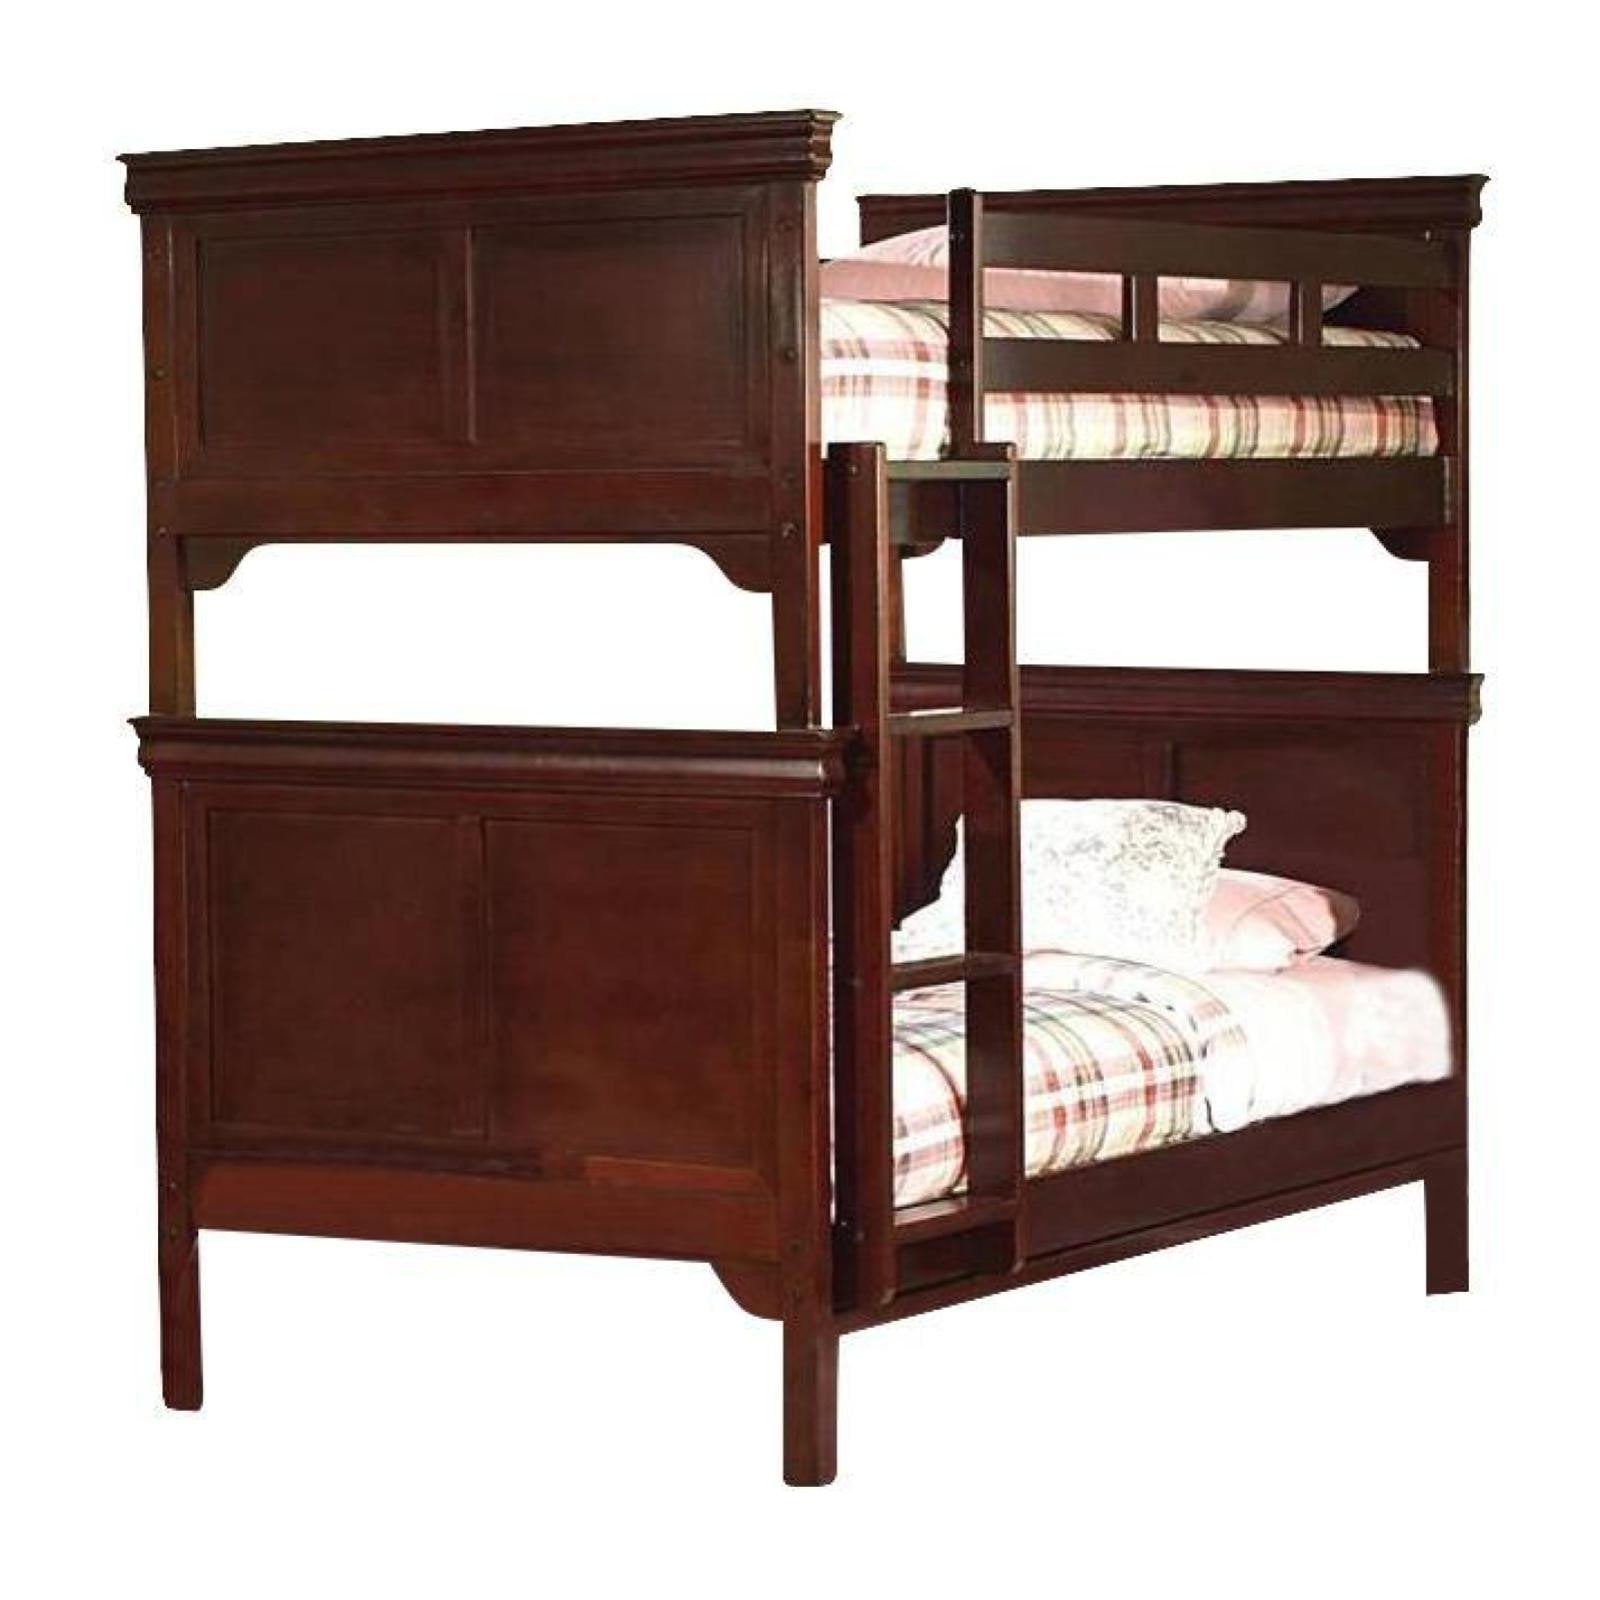 Versaille twin twin bunk bed bunk bed new classic furniture adams furniture